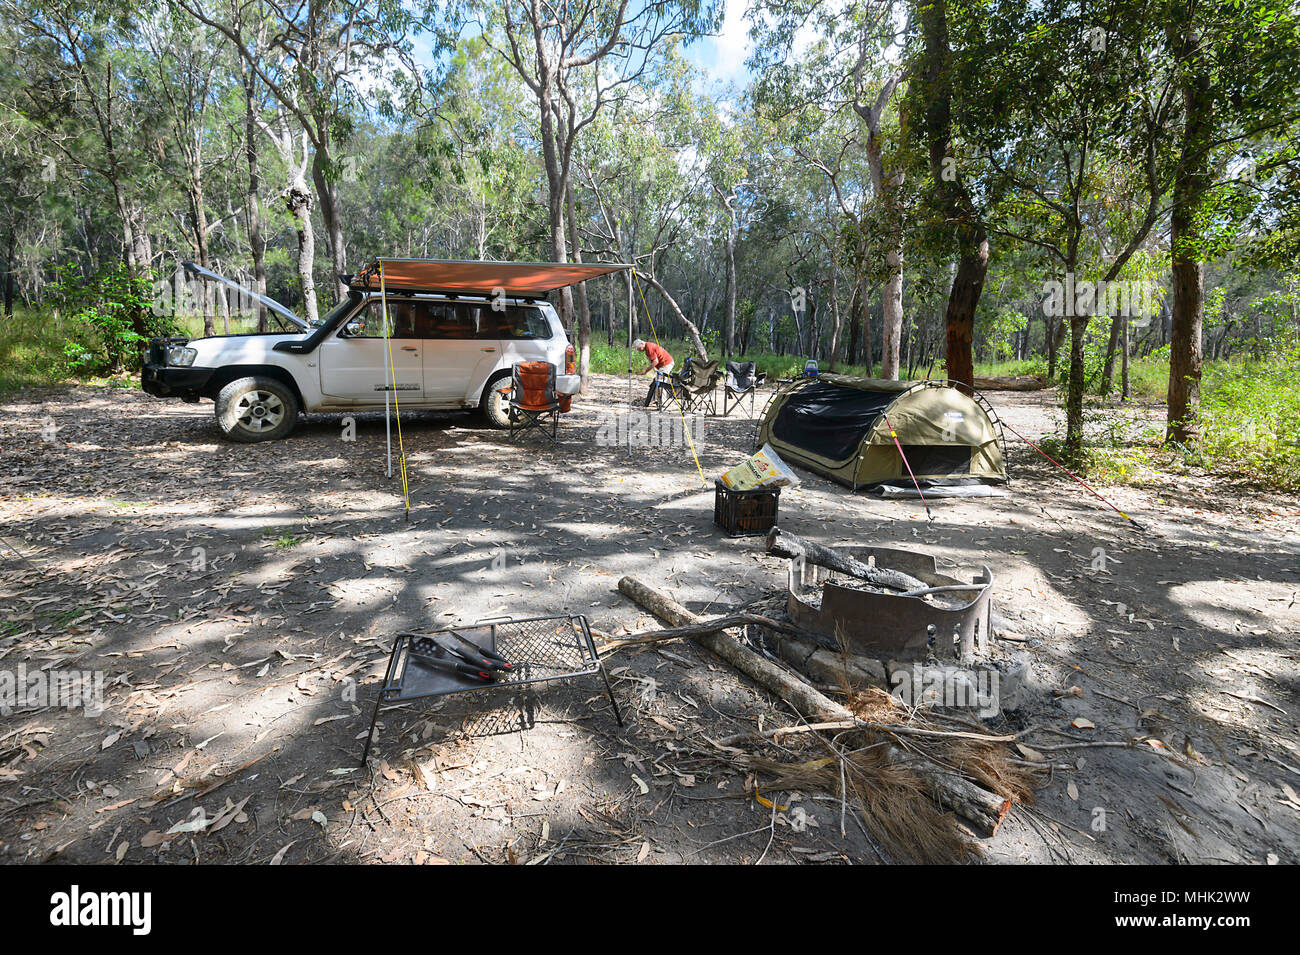 a-shady-bushcamp-with-a-nissan-patrol-4x